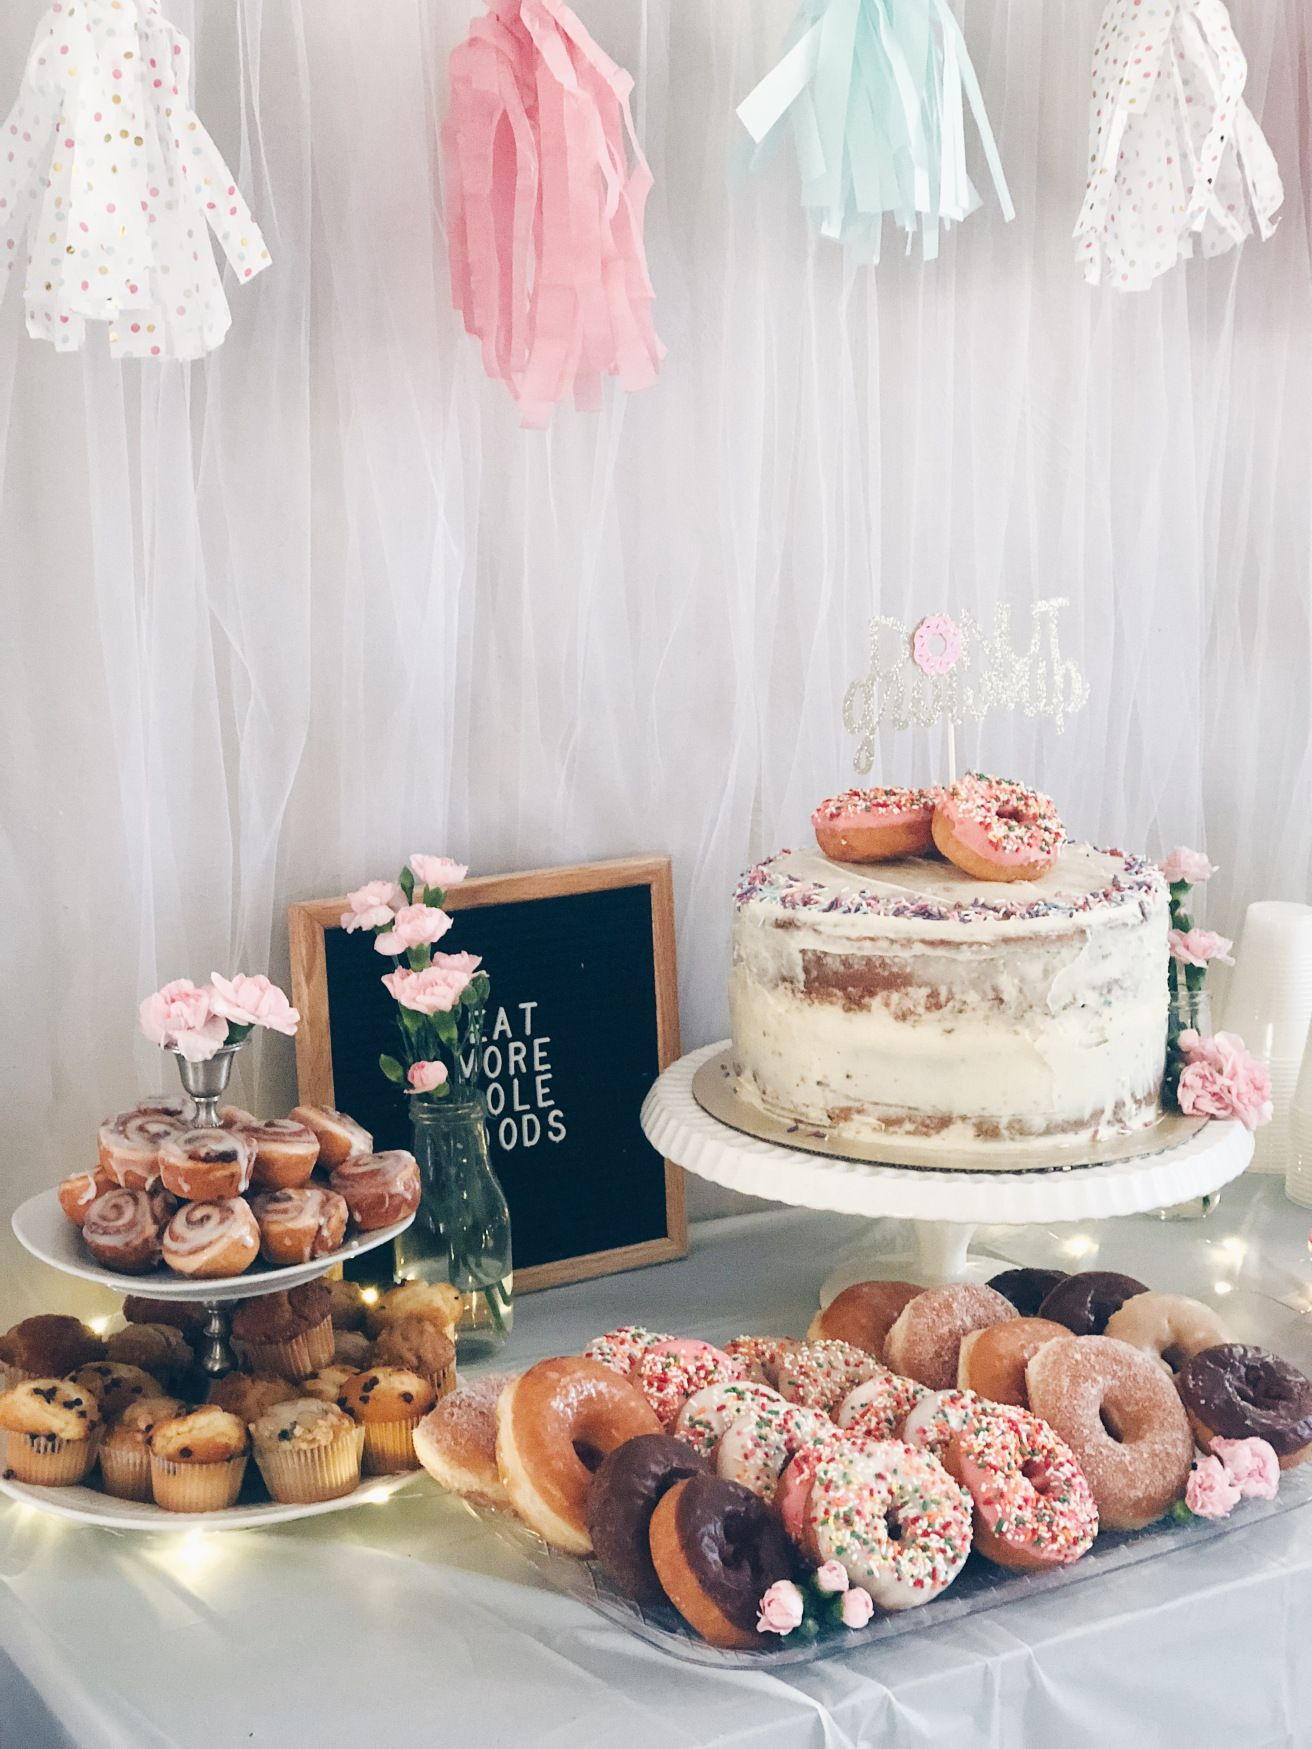 Donut Grow Up Birthday Party Inspiration Donut Birthday Parties Birthday Party For Teens Birthday Party Food